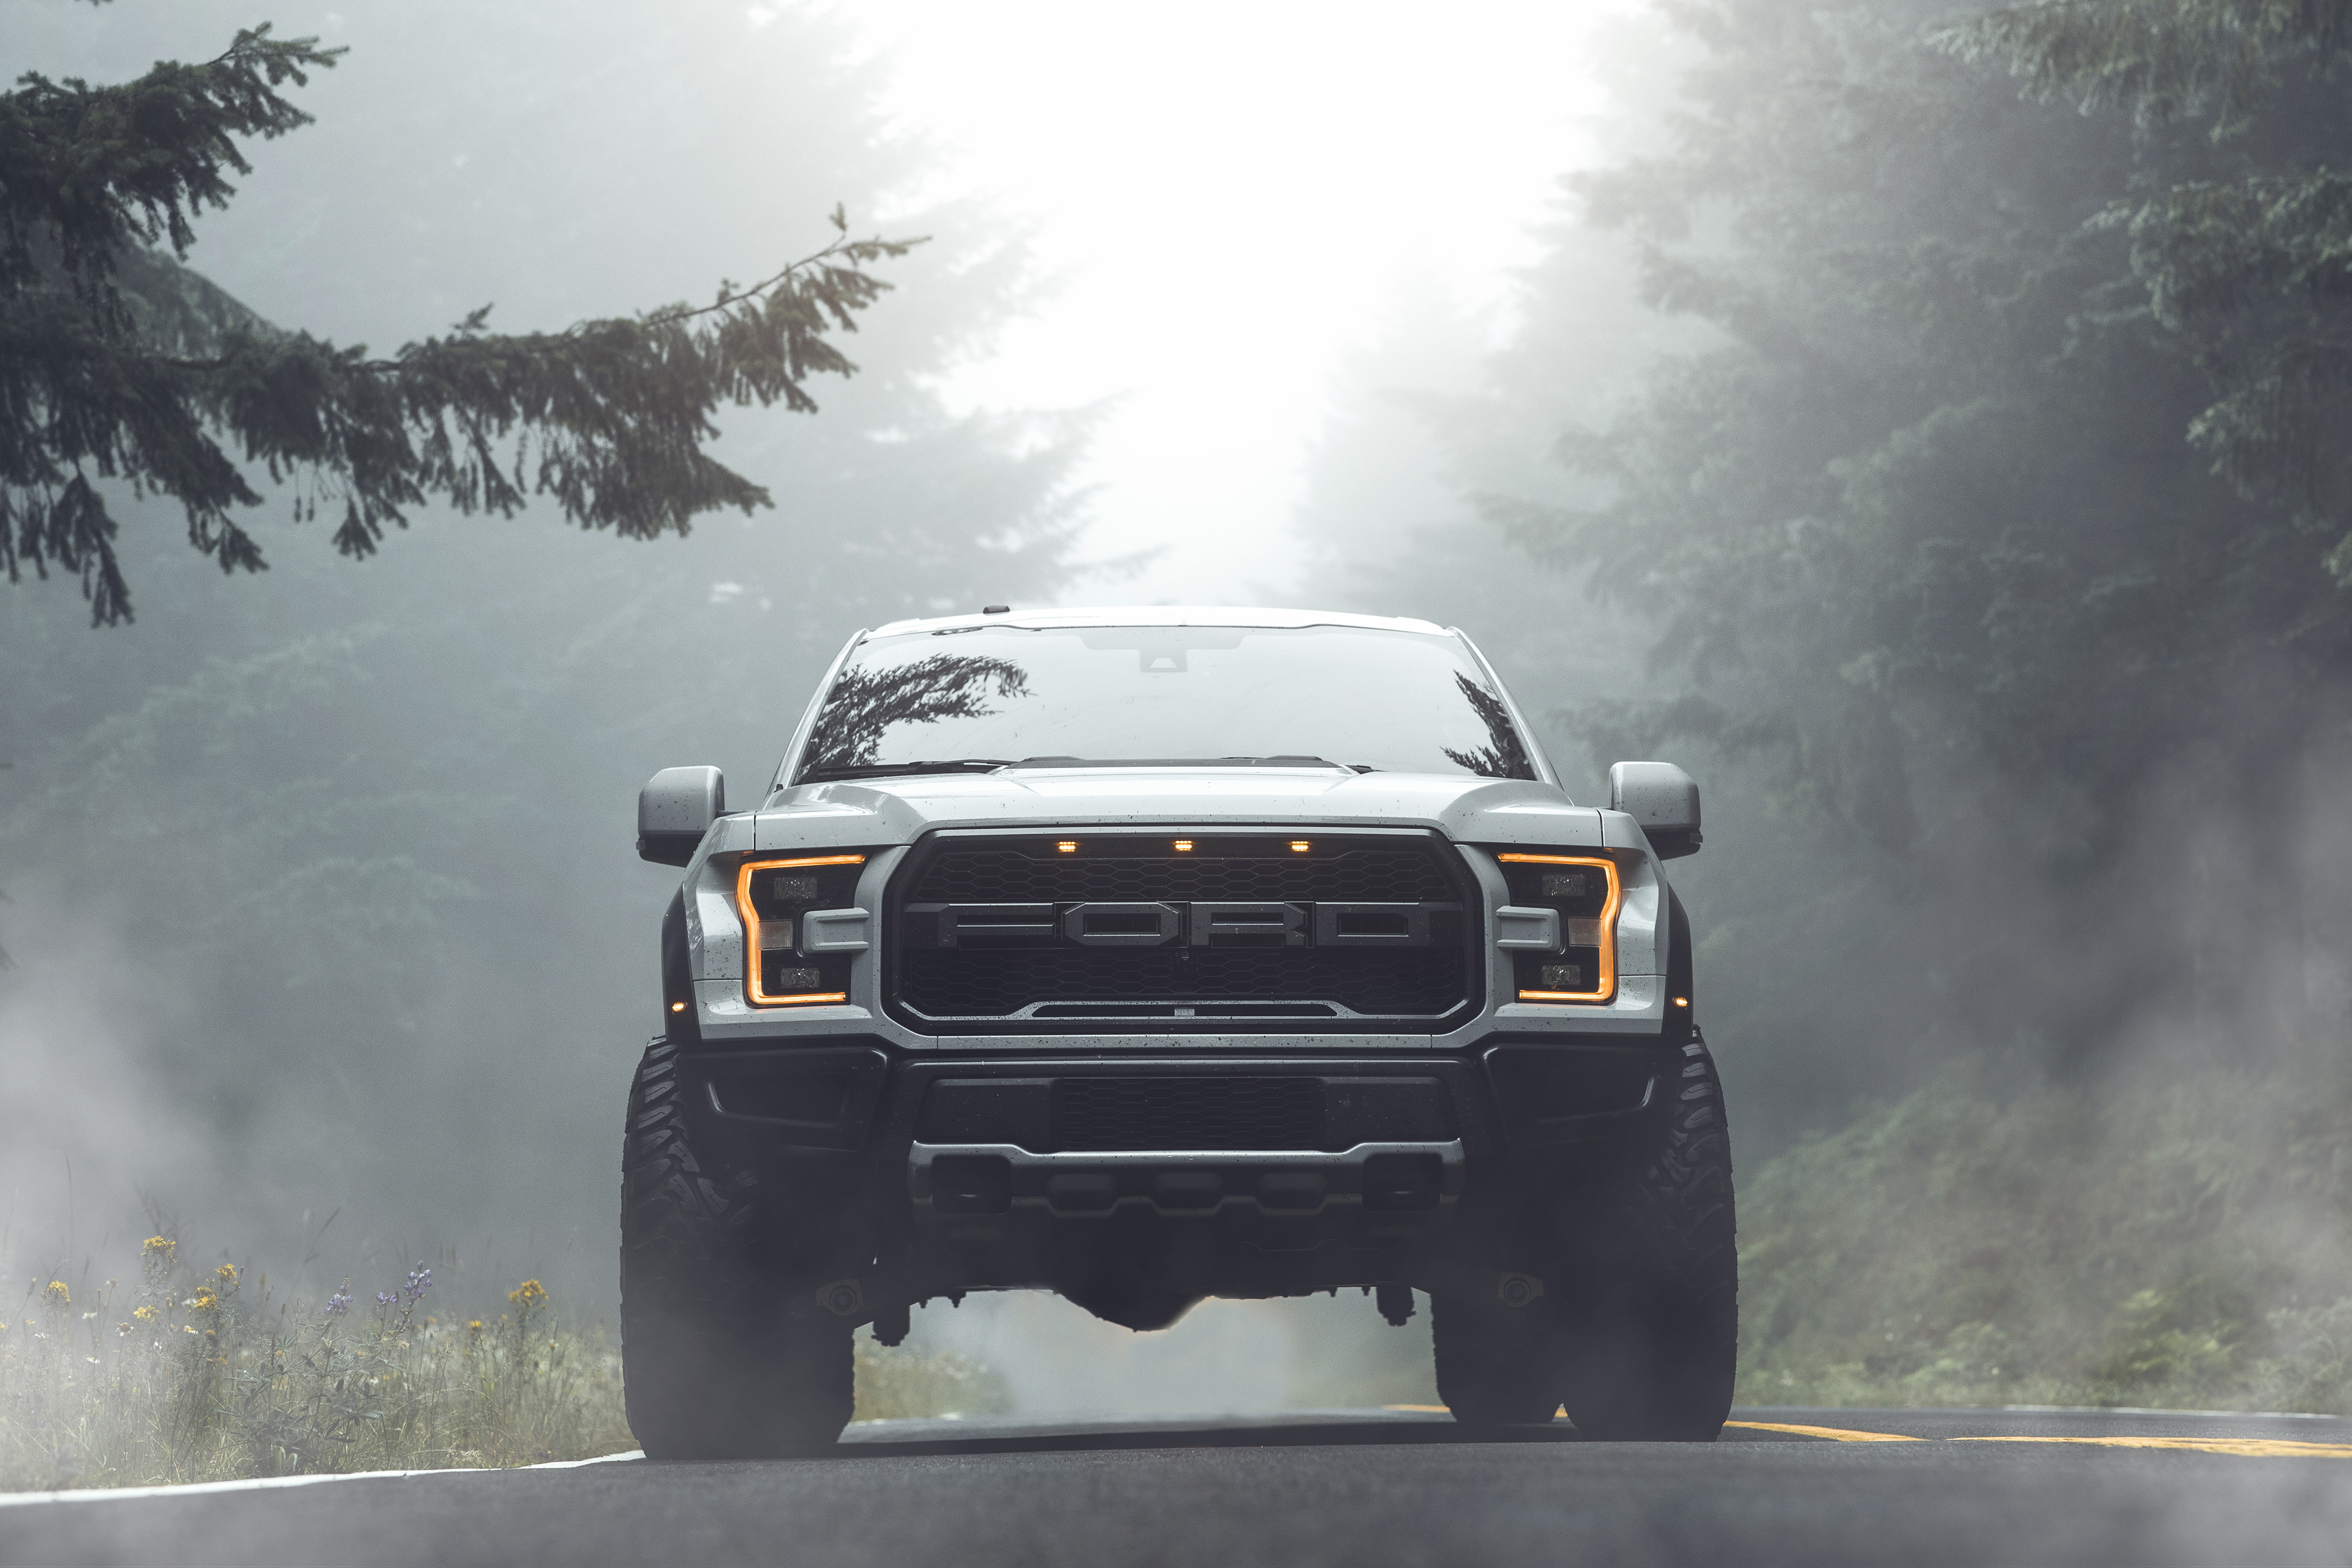 1366x768 Ford Raptor 4k 1366x768 Resolution Hd 4k Wallpapers Images Backgrounds Photos And Pictures